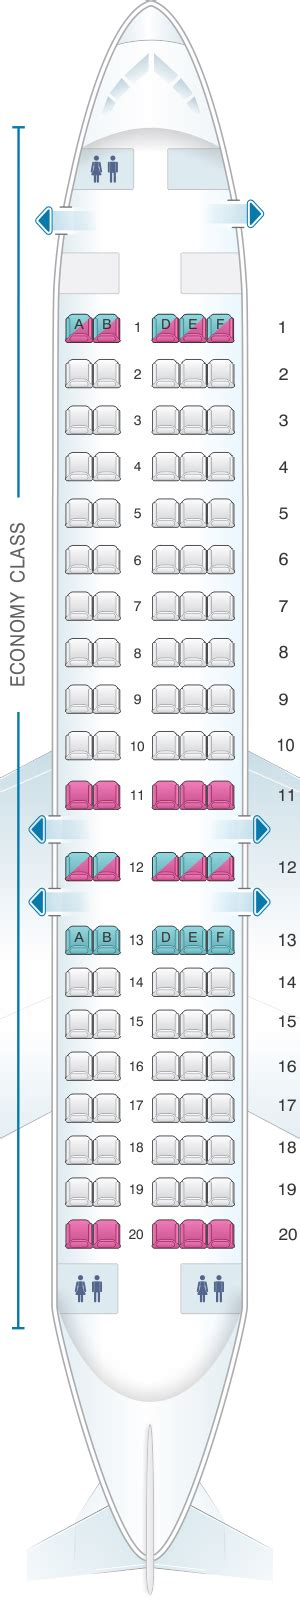 Seat Map Helvetic Airways Fokker 100   SeatMaestro